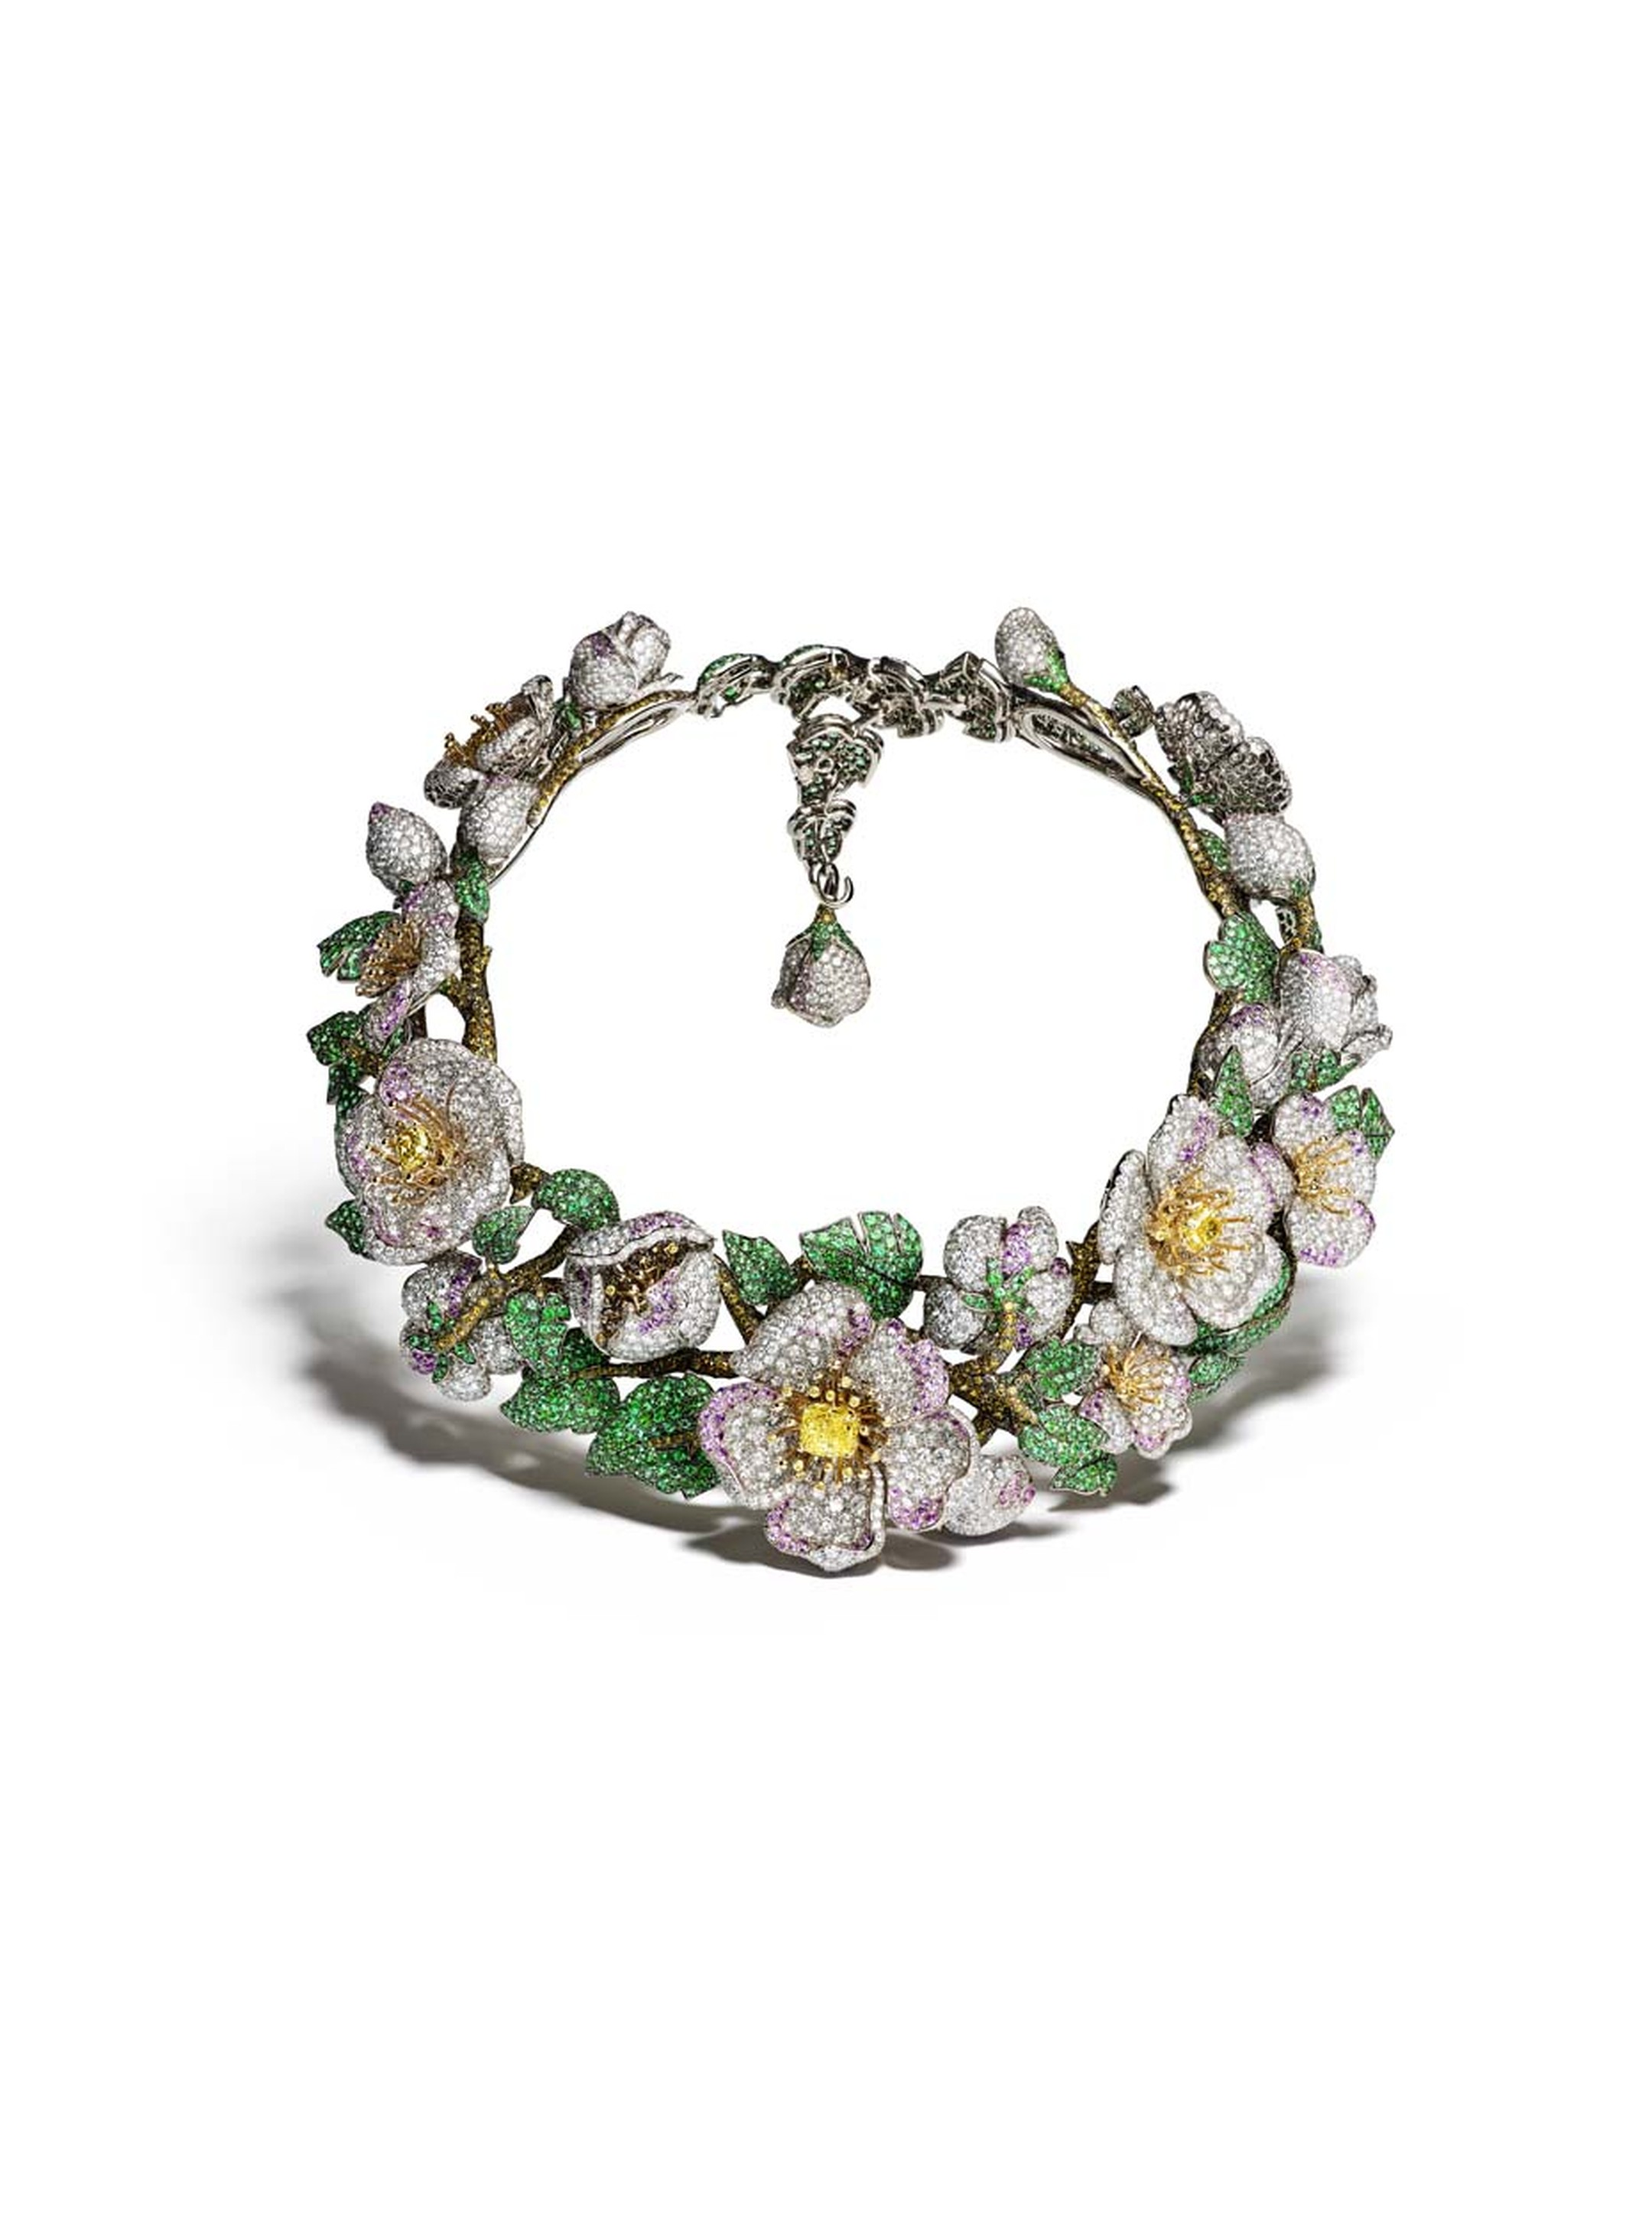 Giampiero Bodino Primavera necklace in white gold featuring emeralds, amethysts, diamonds and black spinels. Image by: Laziz Hamani